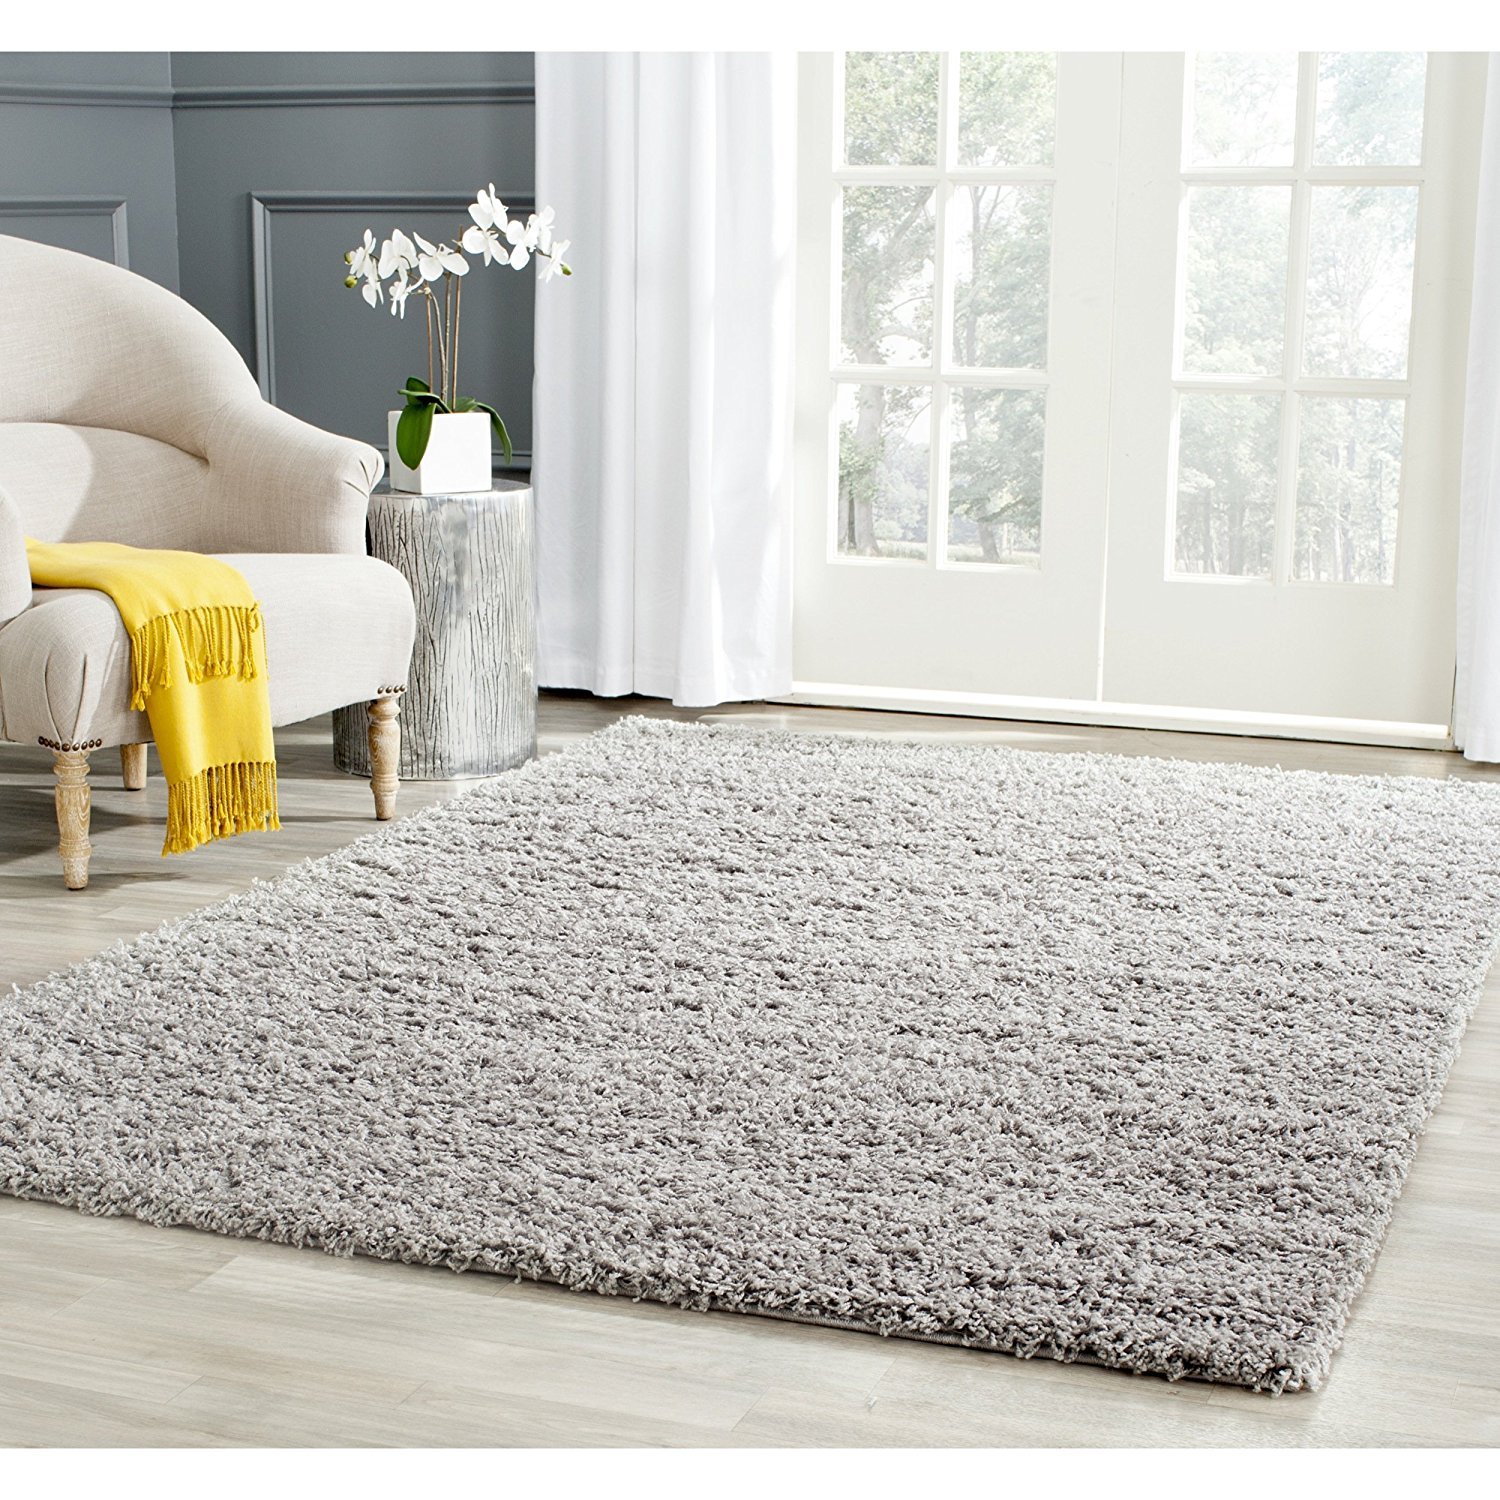 Cheap Grey Shag Rug, find Grey Shag Rug deals on line at Alibaba.com